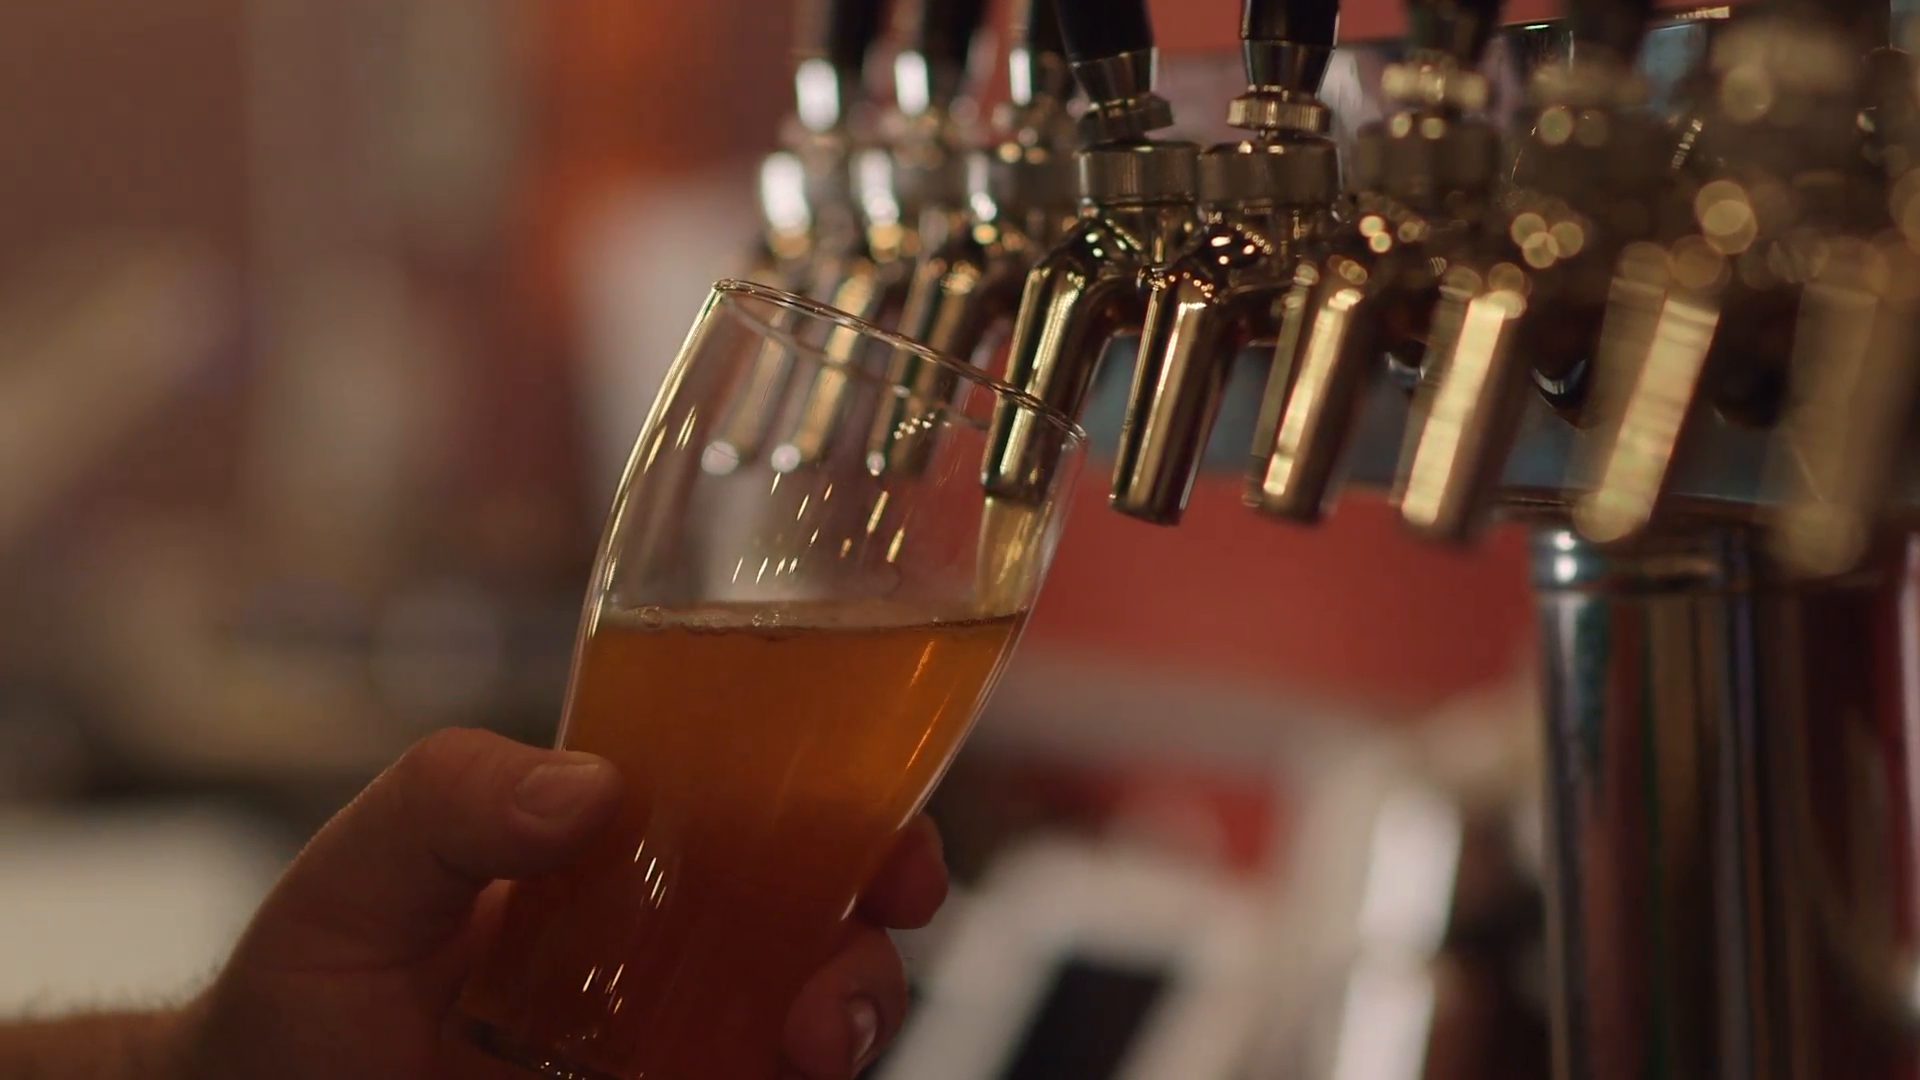 bartender-pouring-craft-beer-from-tap-into-pint-glass-at-restaurant-bar-brewery_v1w53z0tx__F0006